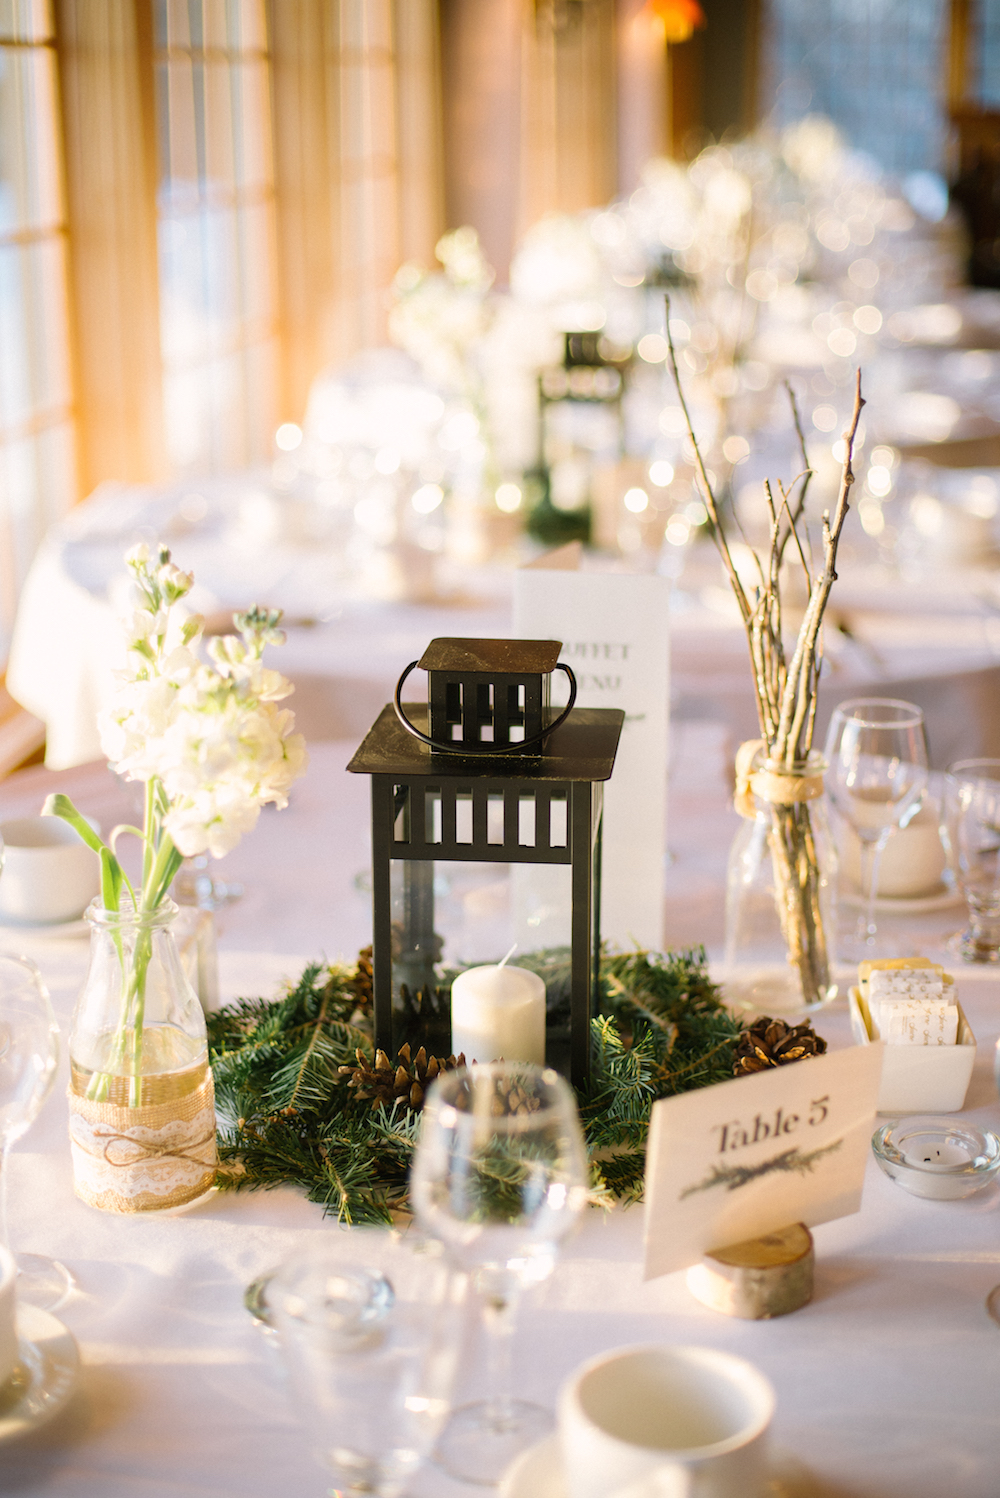 Winter Wedding Decor - Winter Weddings in Winnipeg